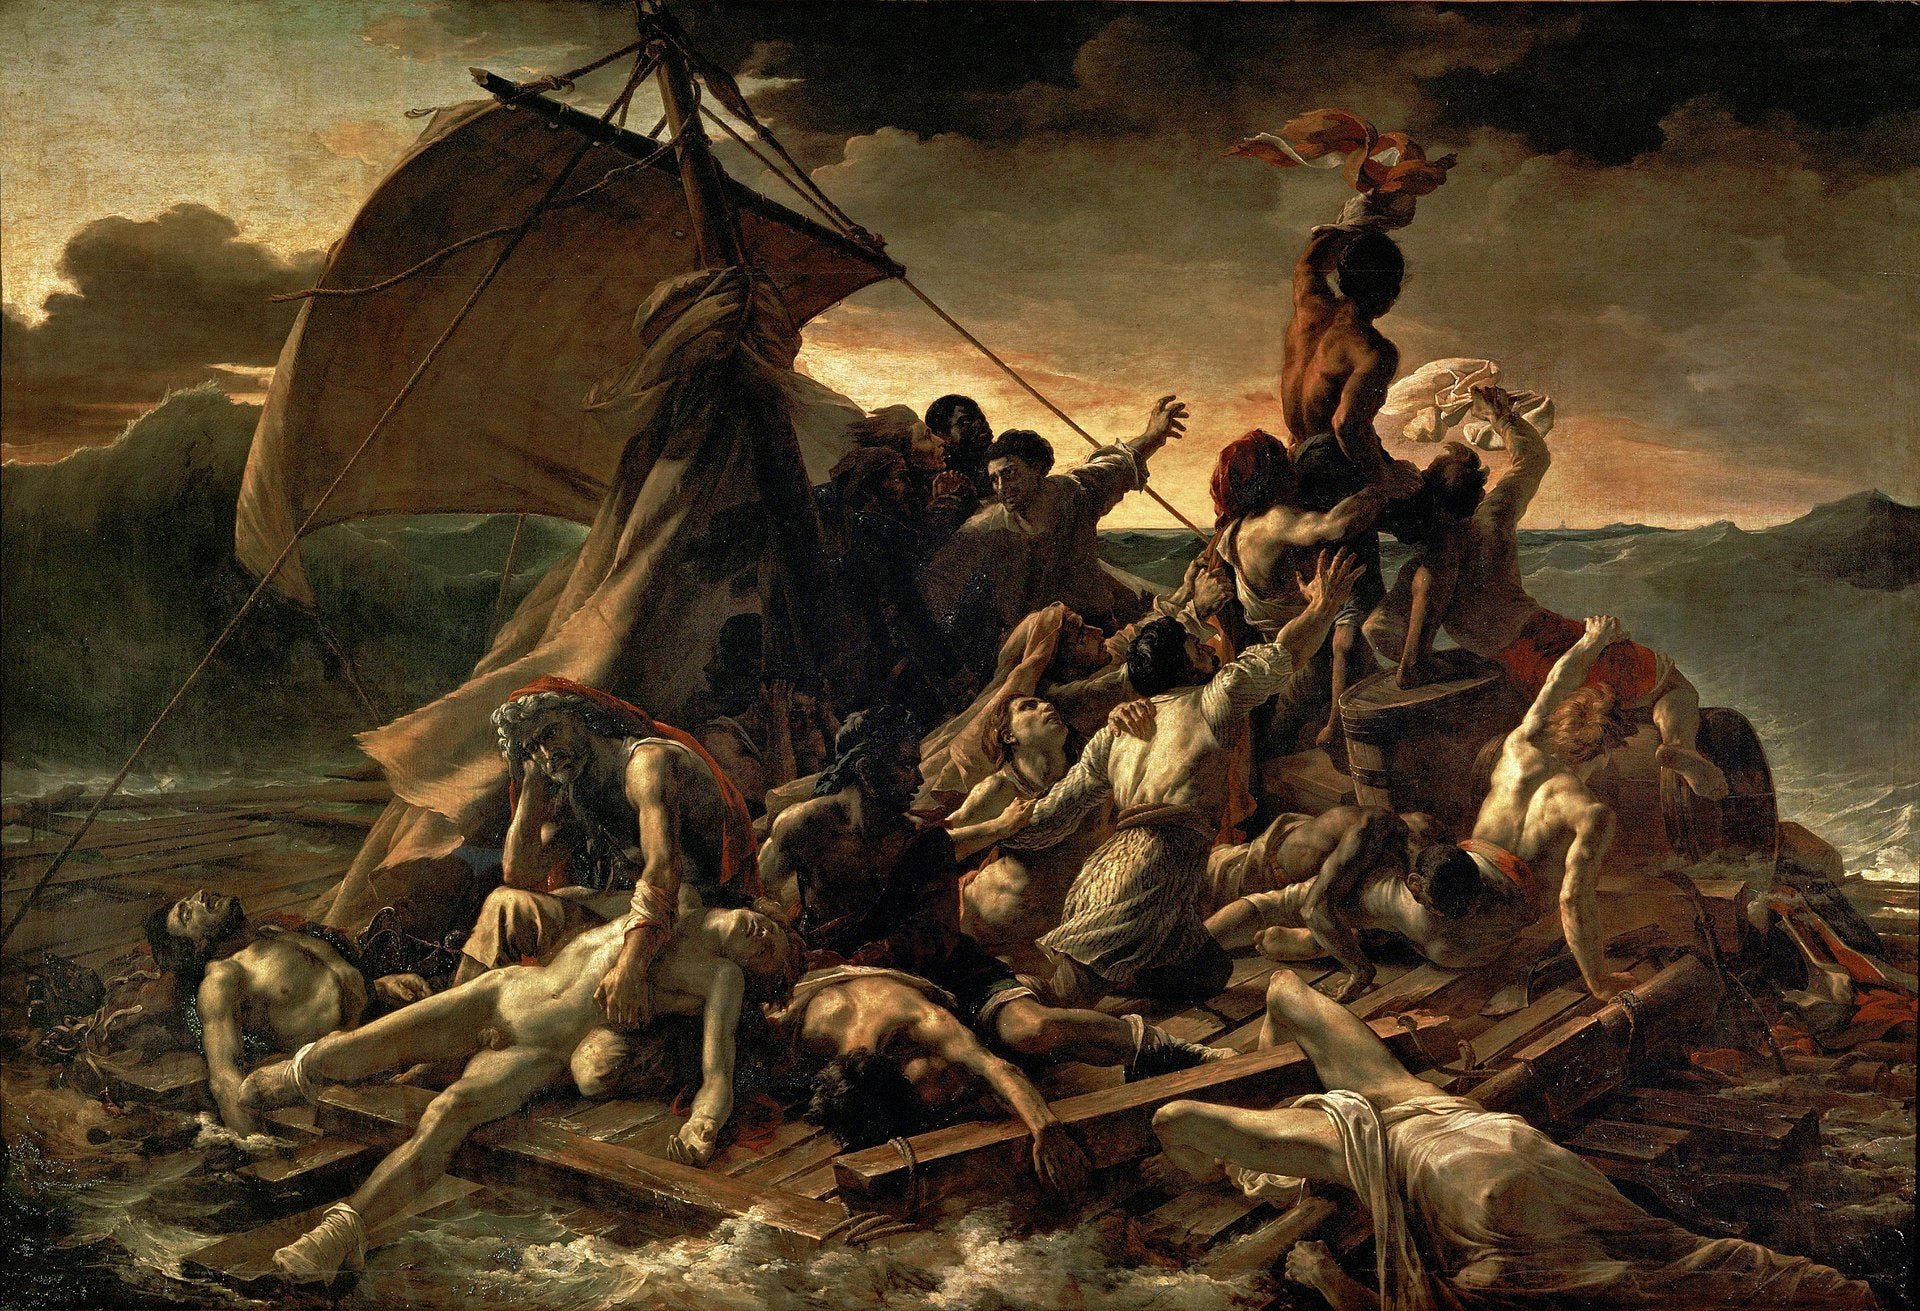 Theodore Gericault's The Raft of the Medusa (1818-1819) at The Louvre, Paris